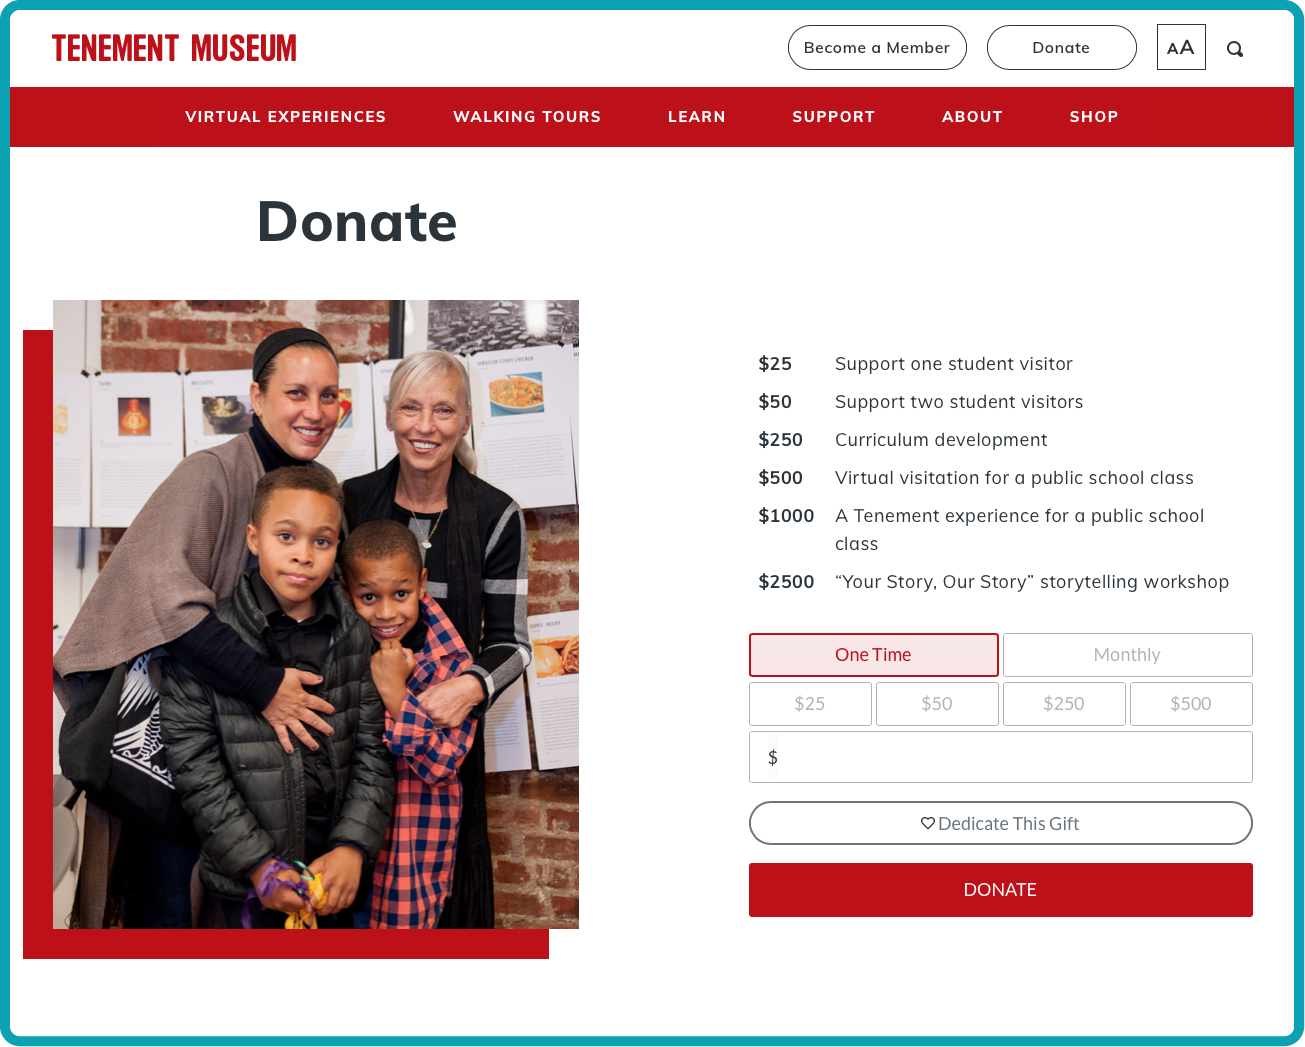 tenement museum donation page